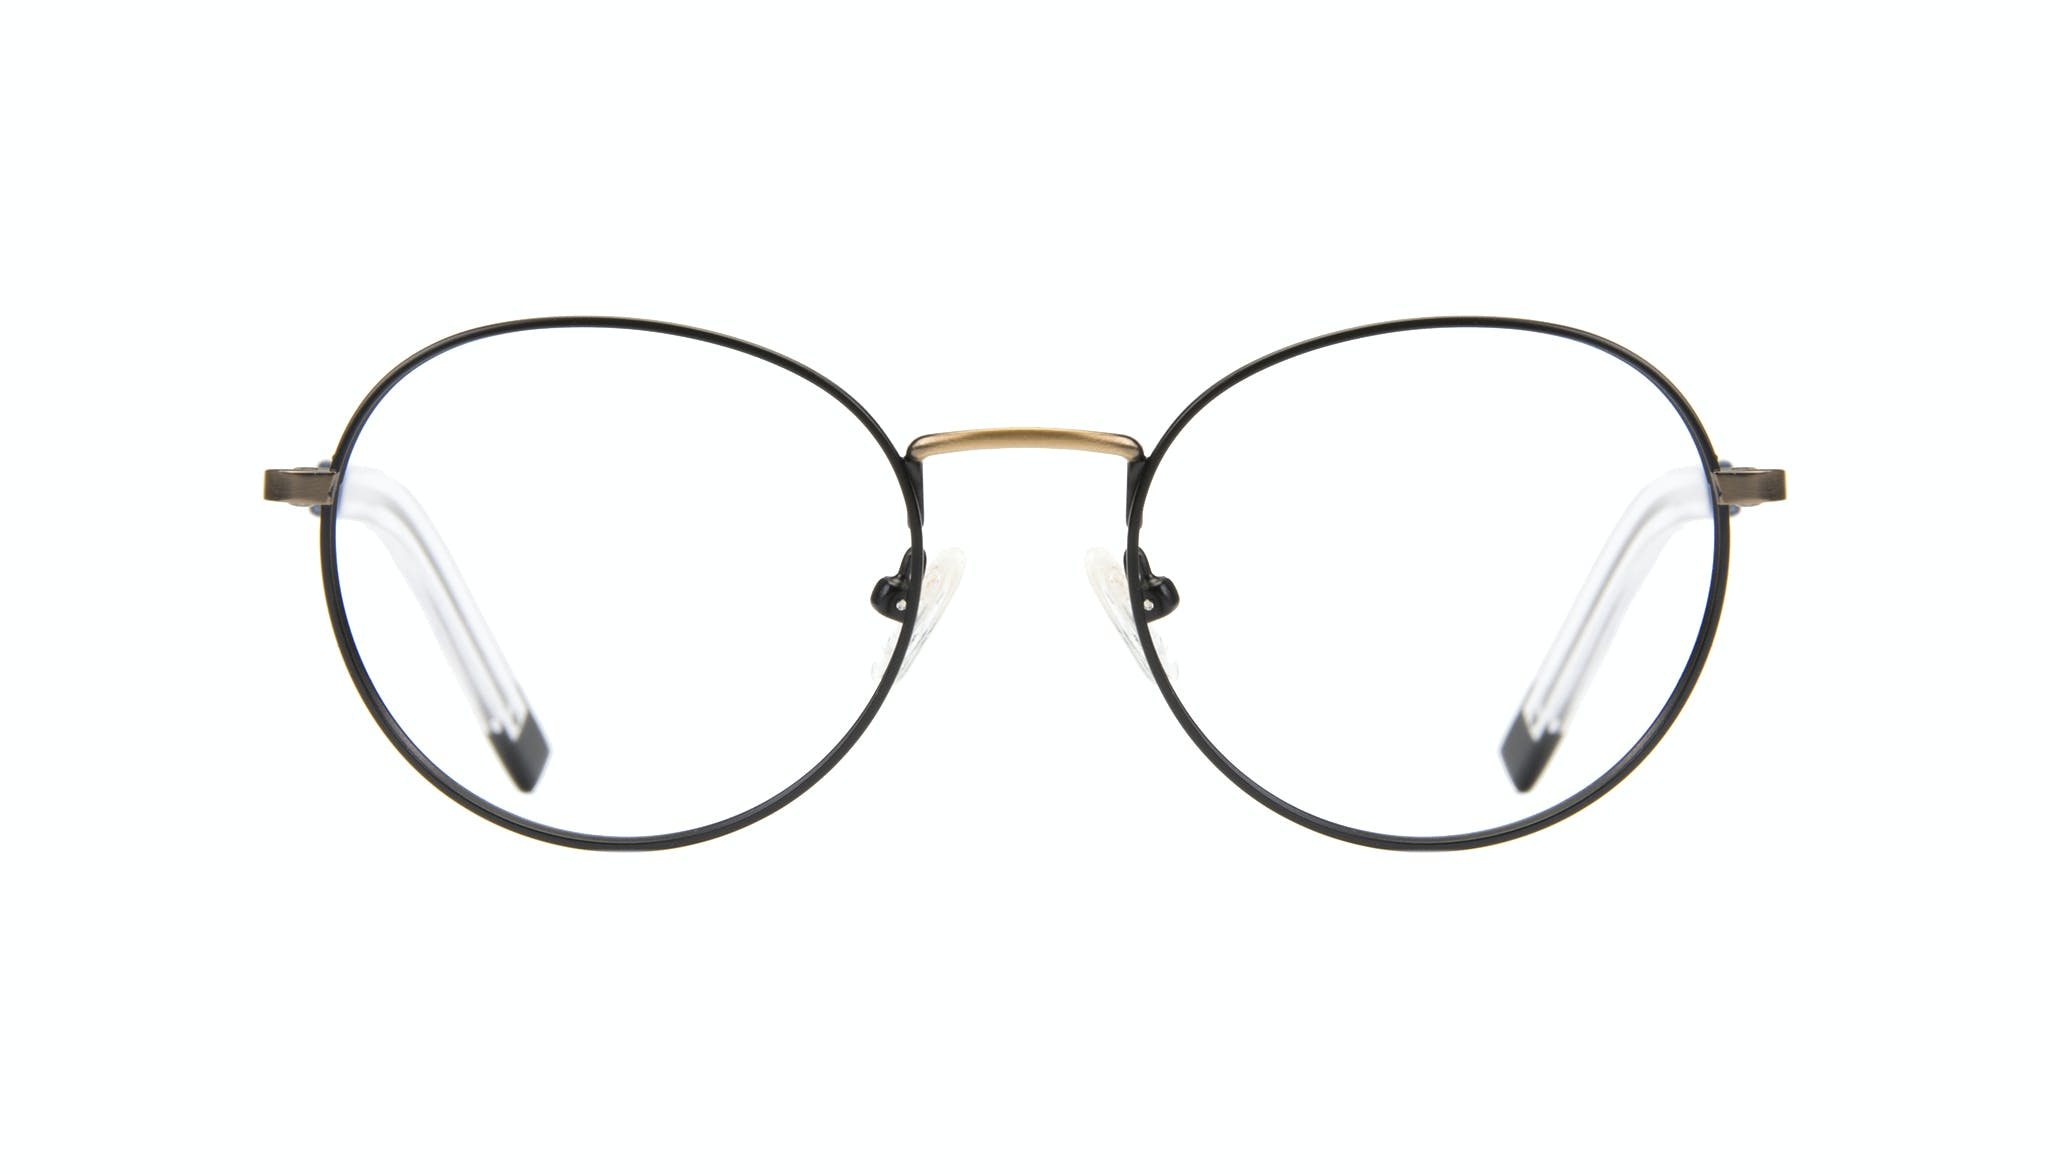 Affordable Fashion Glasses Round Eyeglasses Men Lean Dark Brass